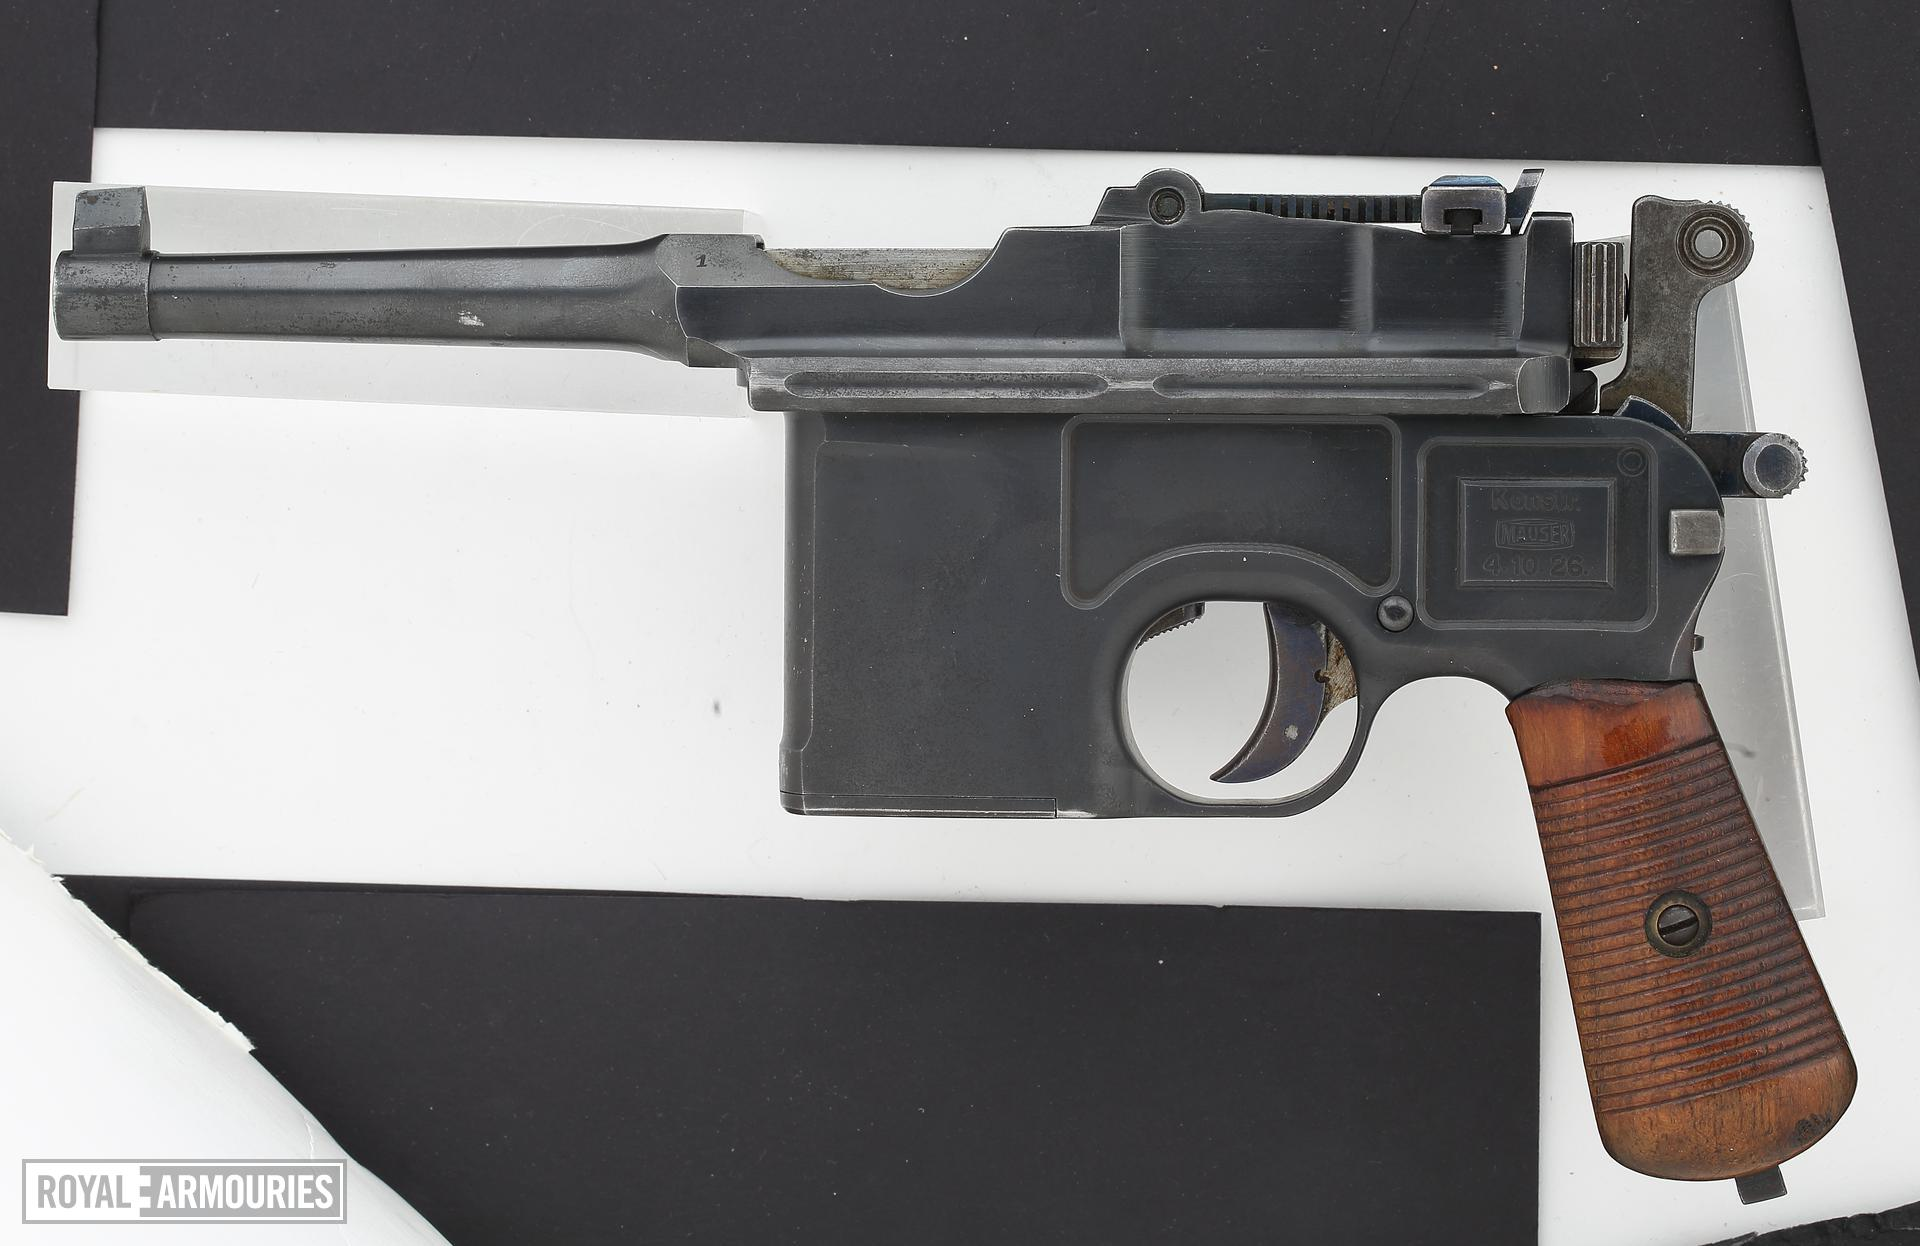 Centrefire automatic pistol - Mauser C96 Schnellfeuer fully-automatic prototype